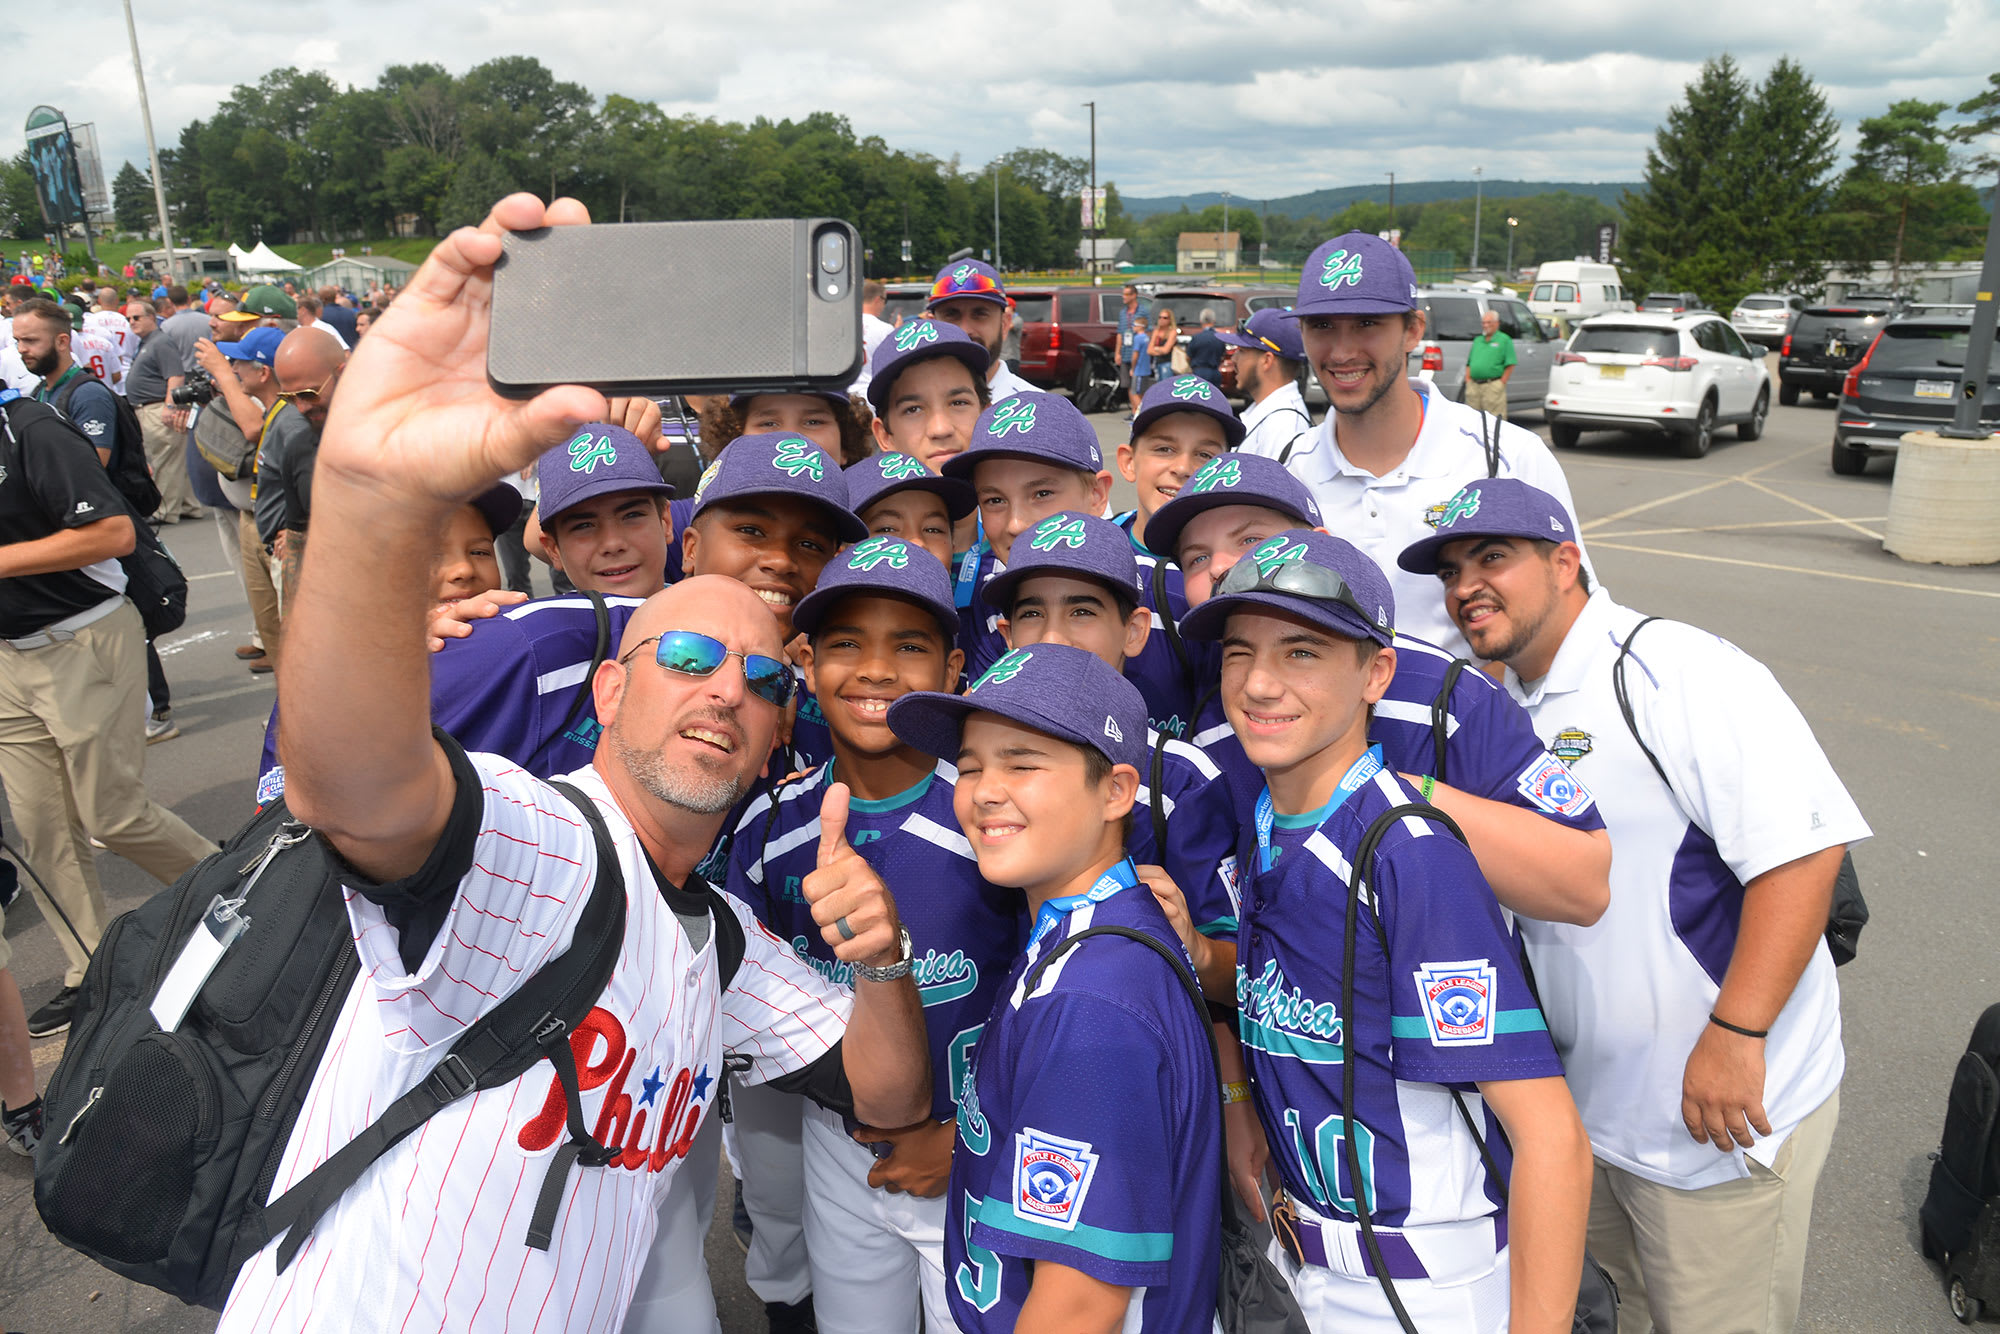 phillies player getting selfie with ll players